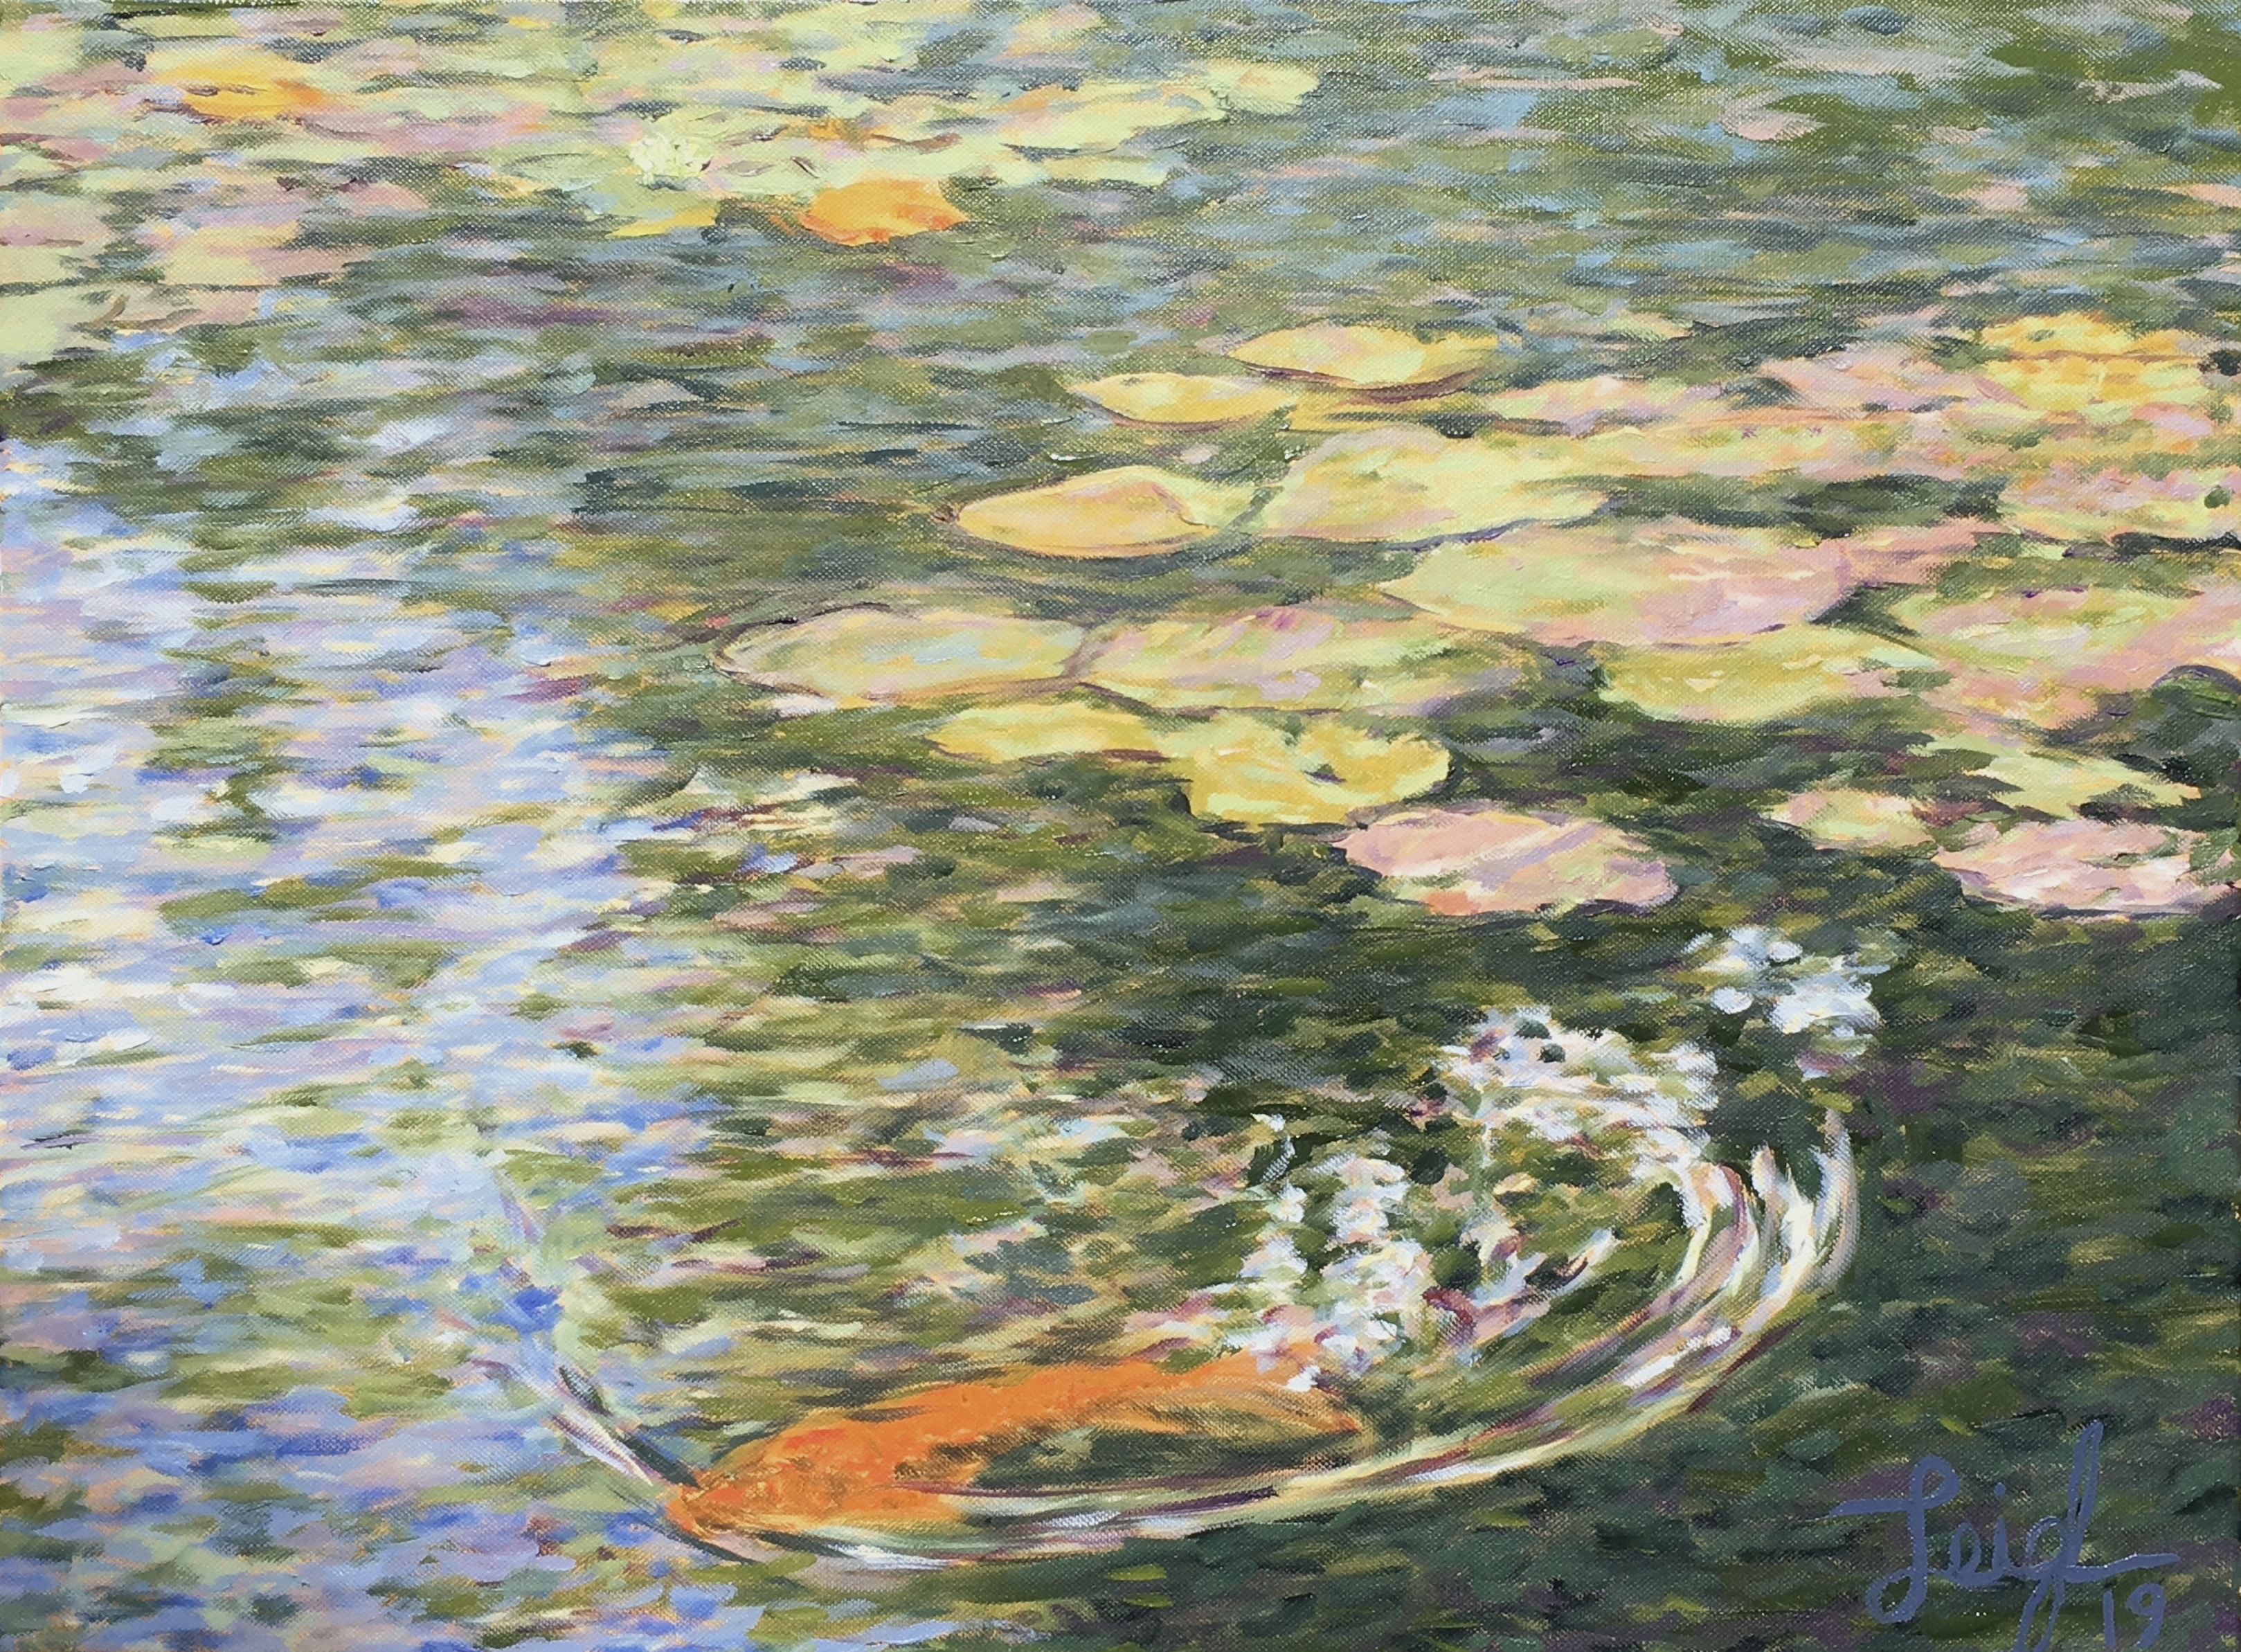 Water lilies in Balboa Park #4 2019  •  24 x 18